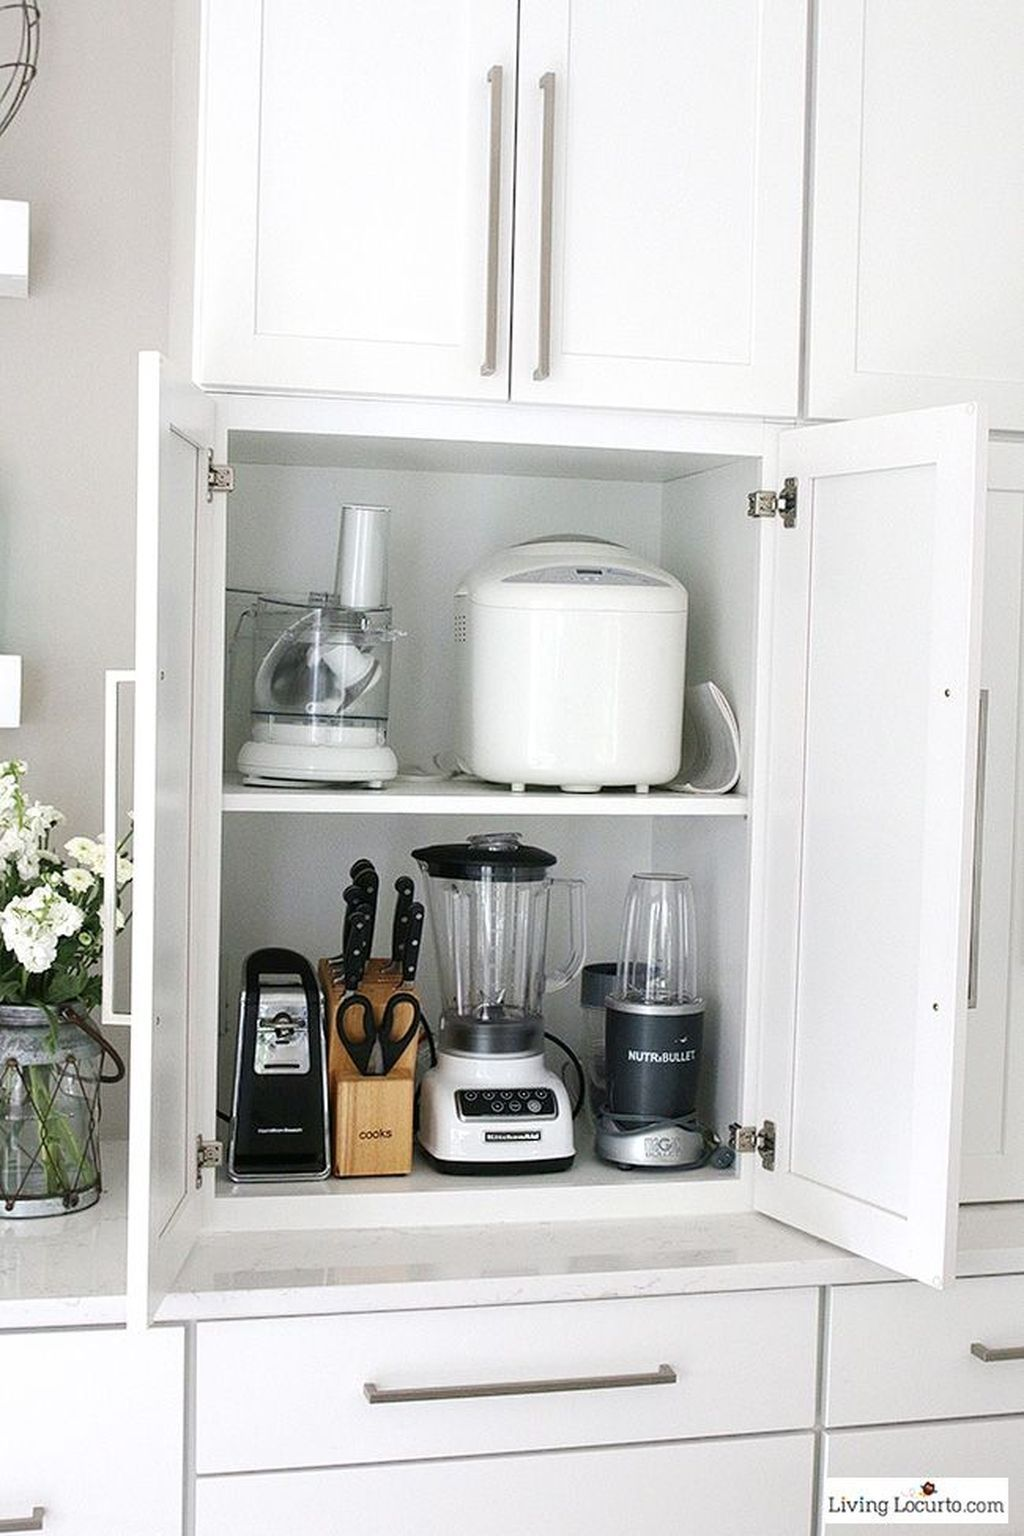 Awesome 30 Affordable Kitchen Storage Ideas More At Https Www Trendecors Com 2018 11 13 3 Best Kitchen Cabinets Kitchen Cabinet Design New Kitchen Cabinets